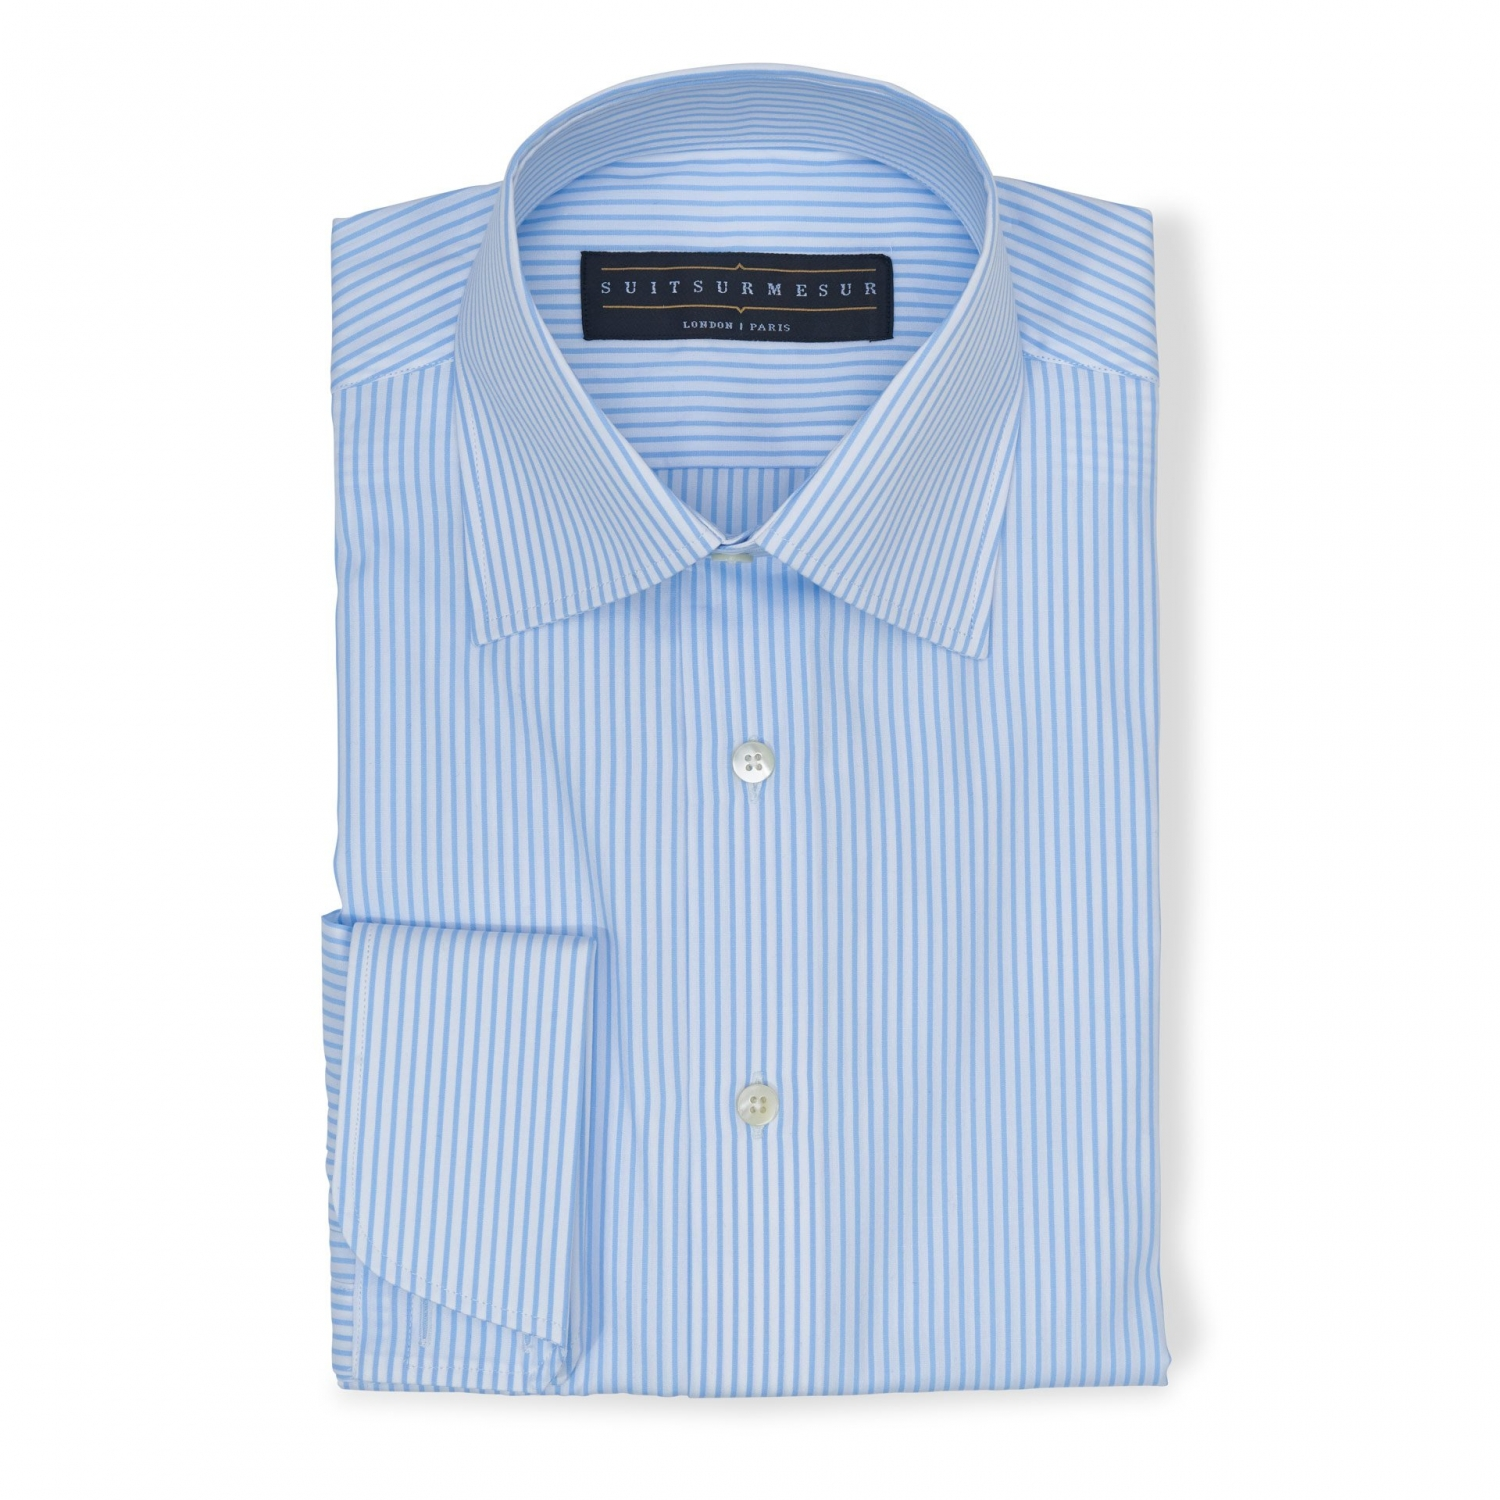 Stripe sky blue (half Italian collar) Poplin shirt - 100% cotton Canclini fabric